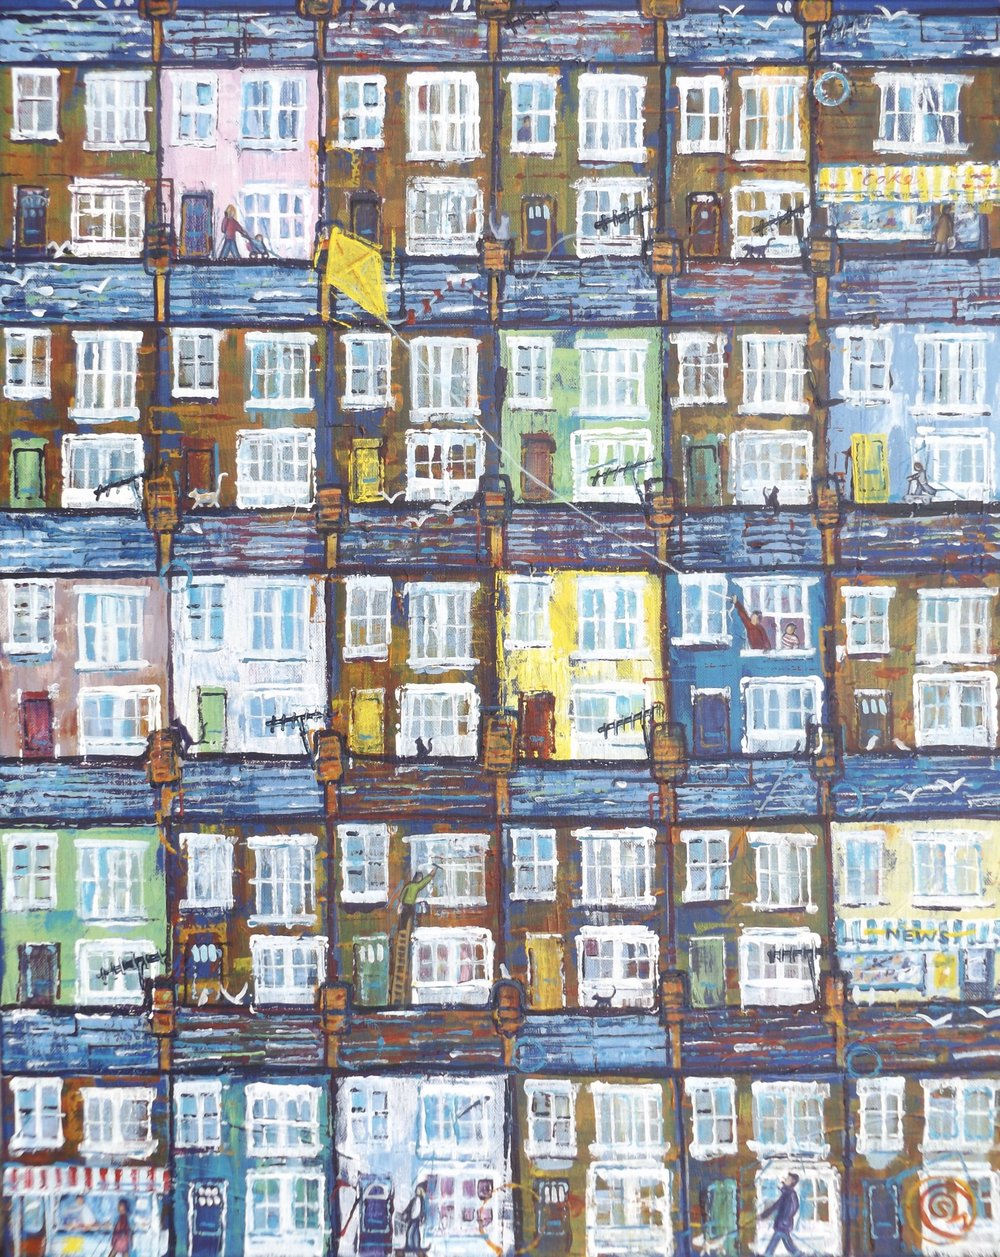 'Flight of Fantasy' Acrylic on canvas (61cm x 46cm) urban life in a seaside town